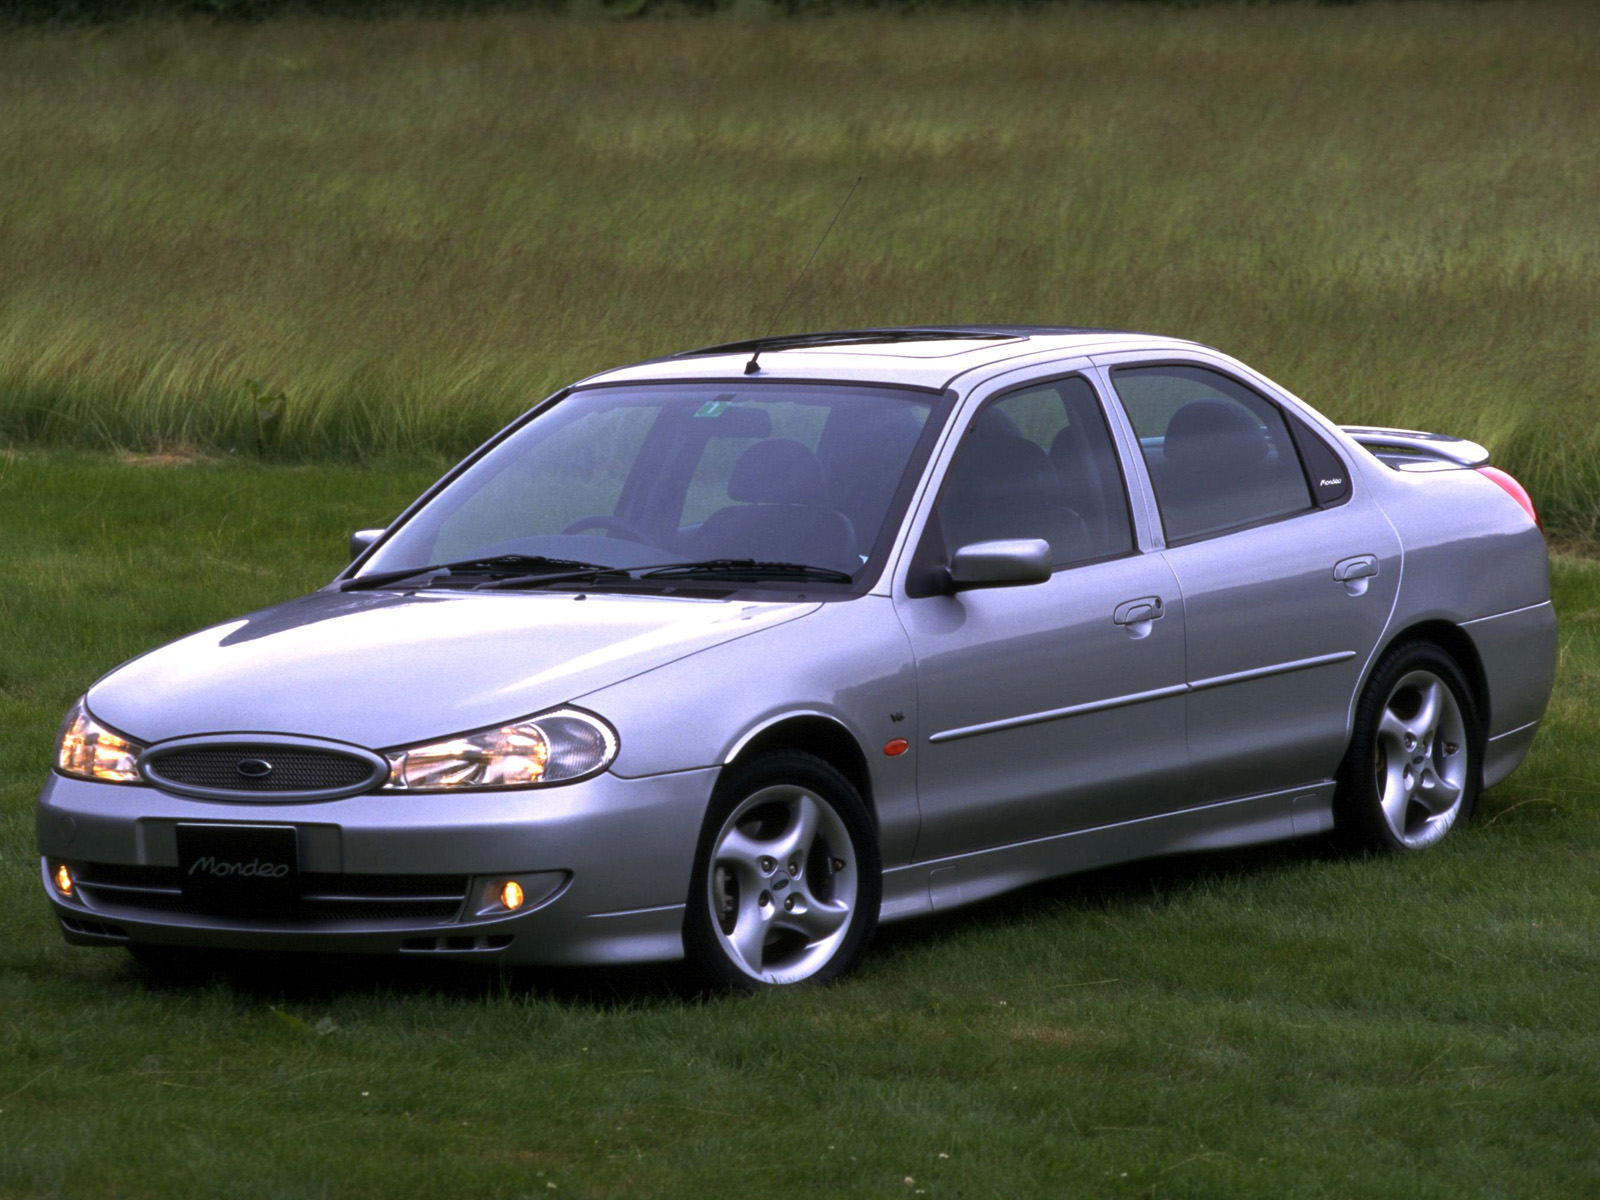 2000 Ford Mondeo #19